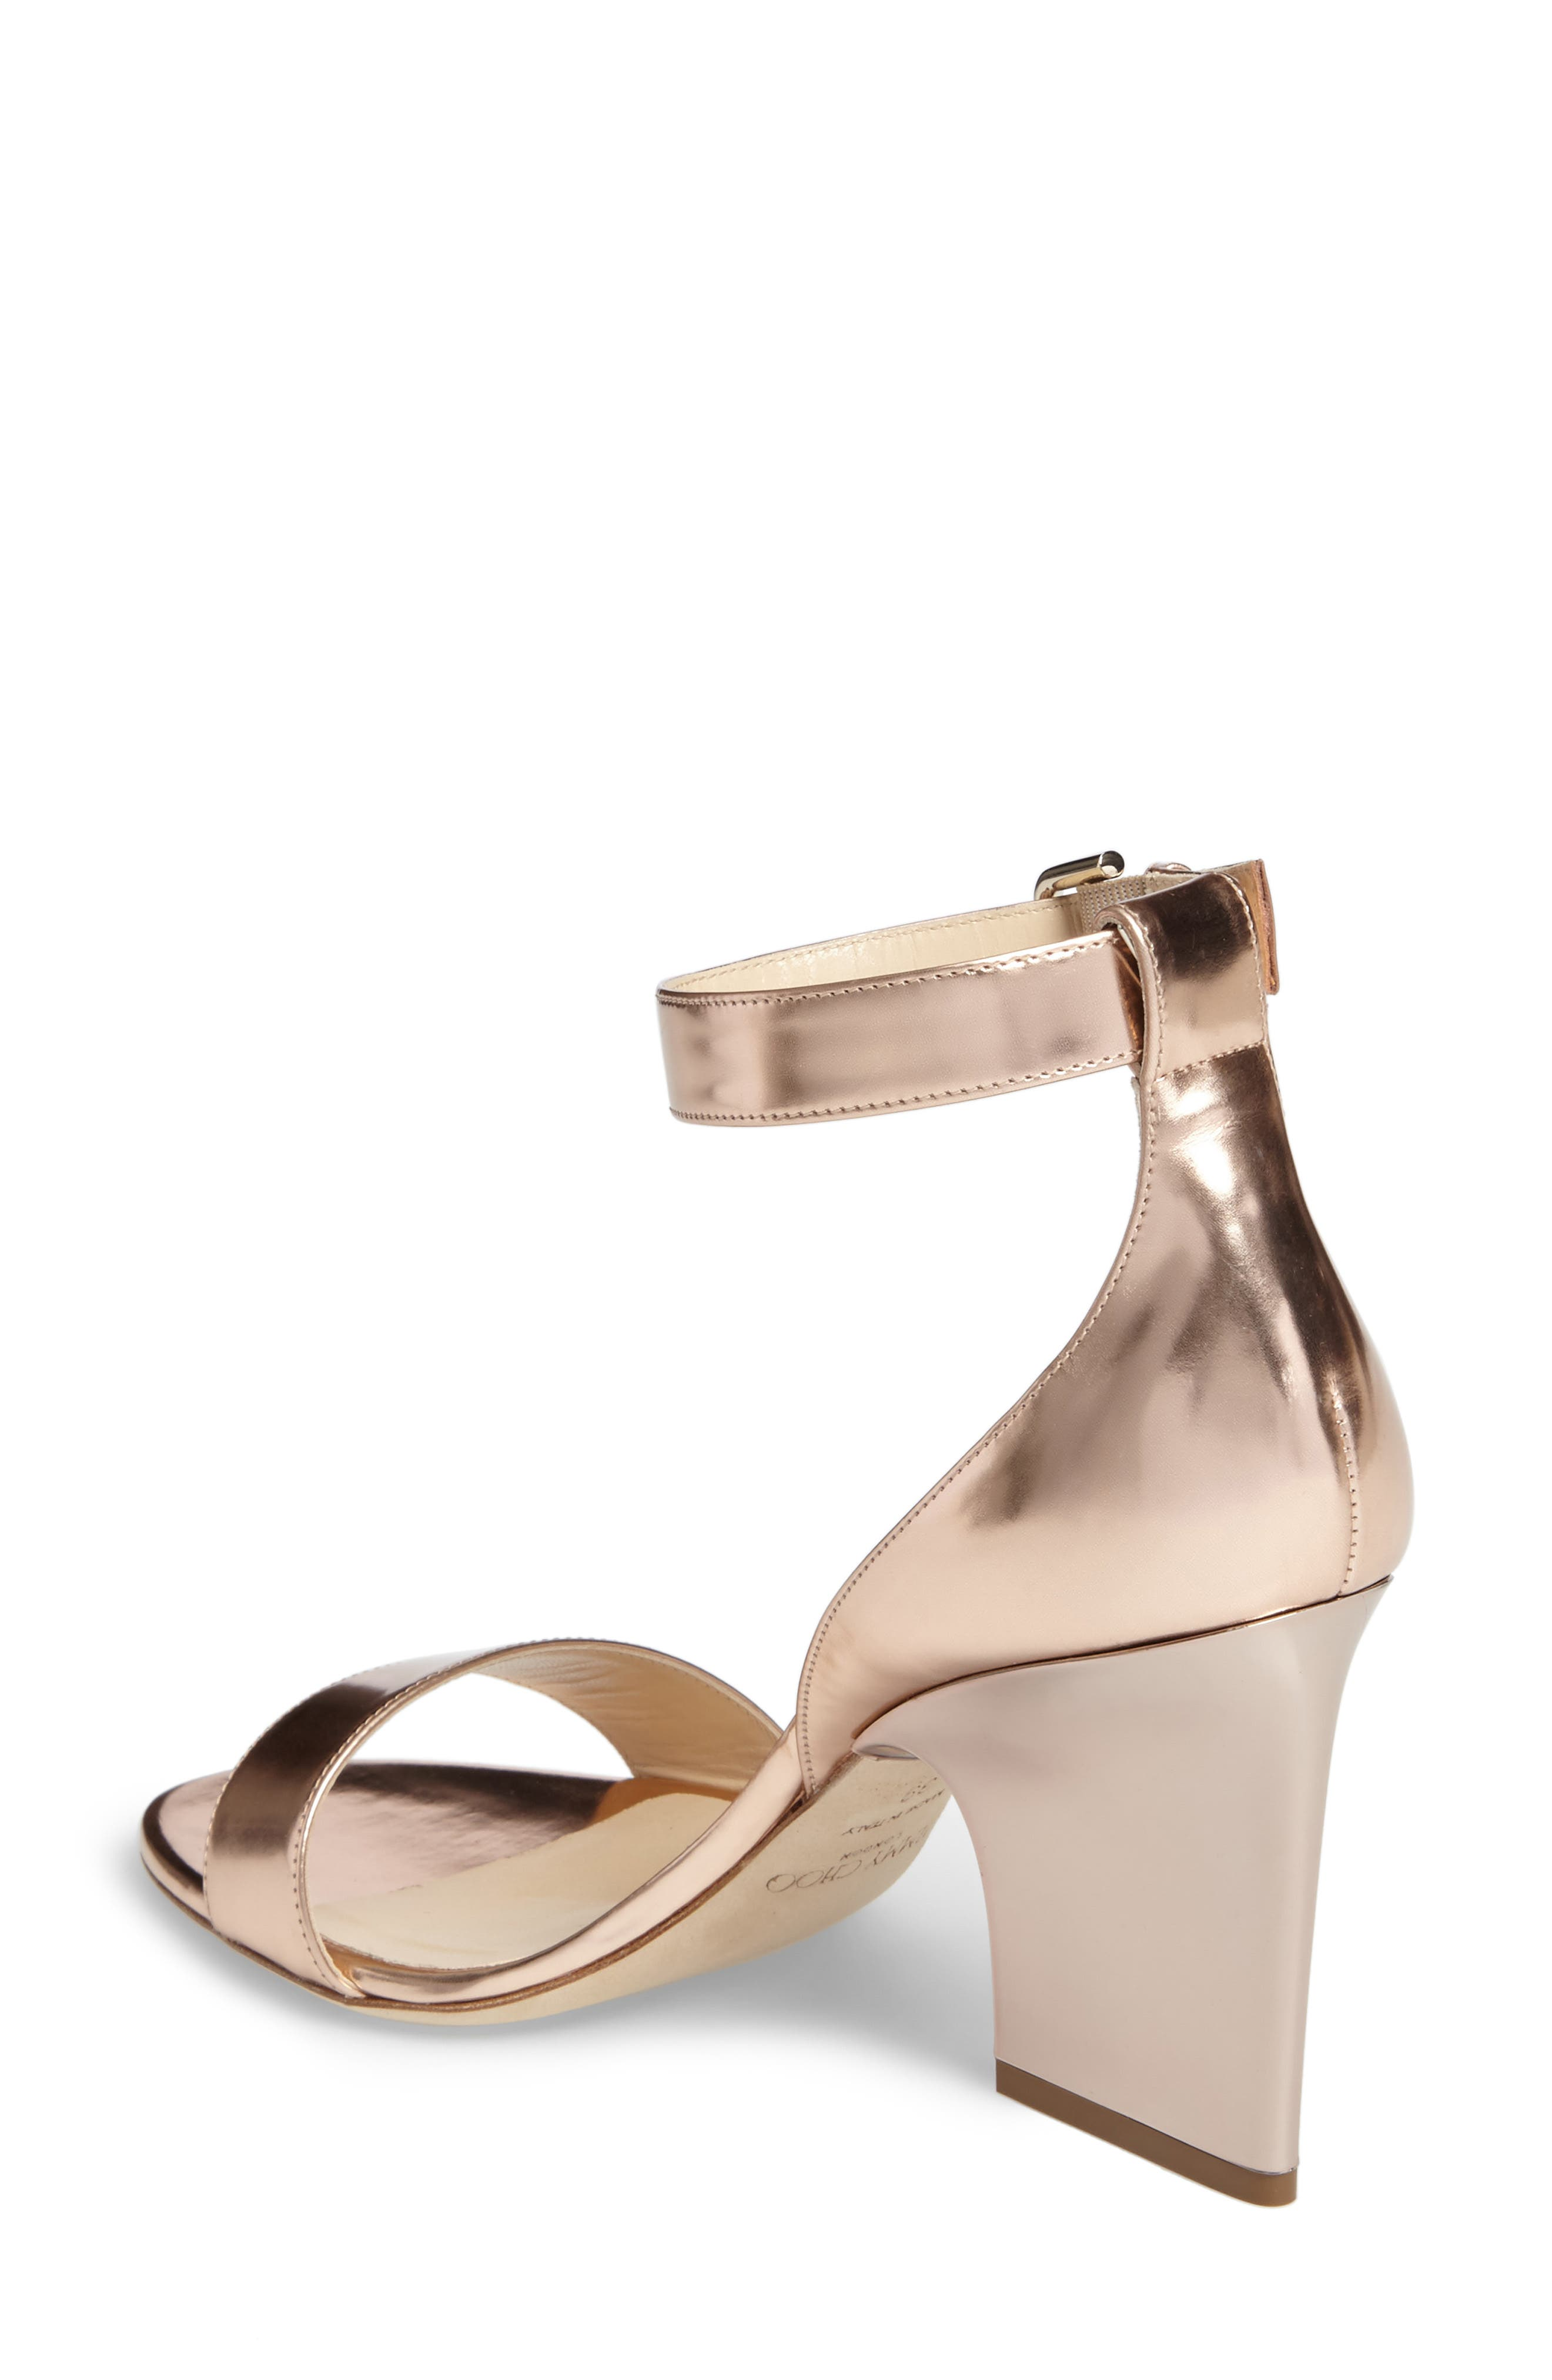 Edina Ankle Strap Sandal,                             Alternate thumbnail 2, color,                             710